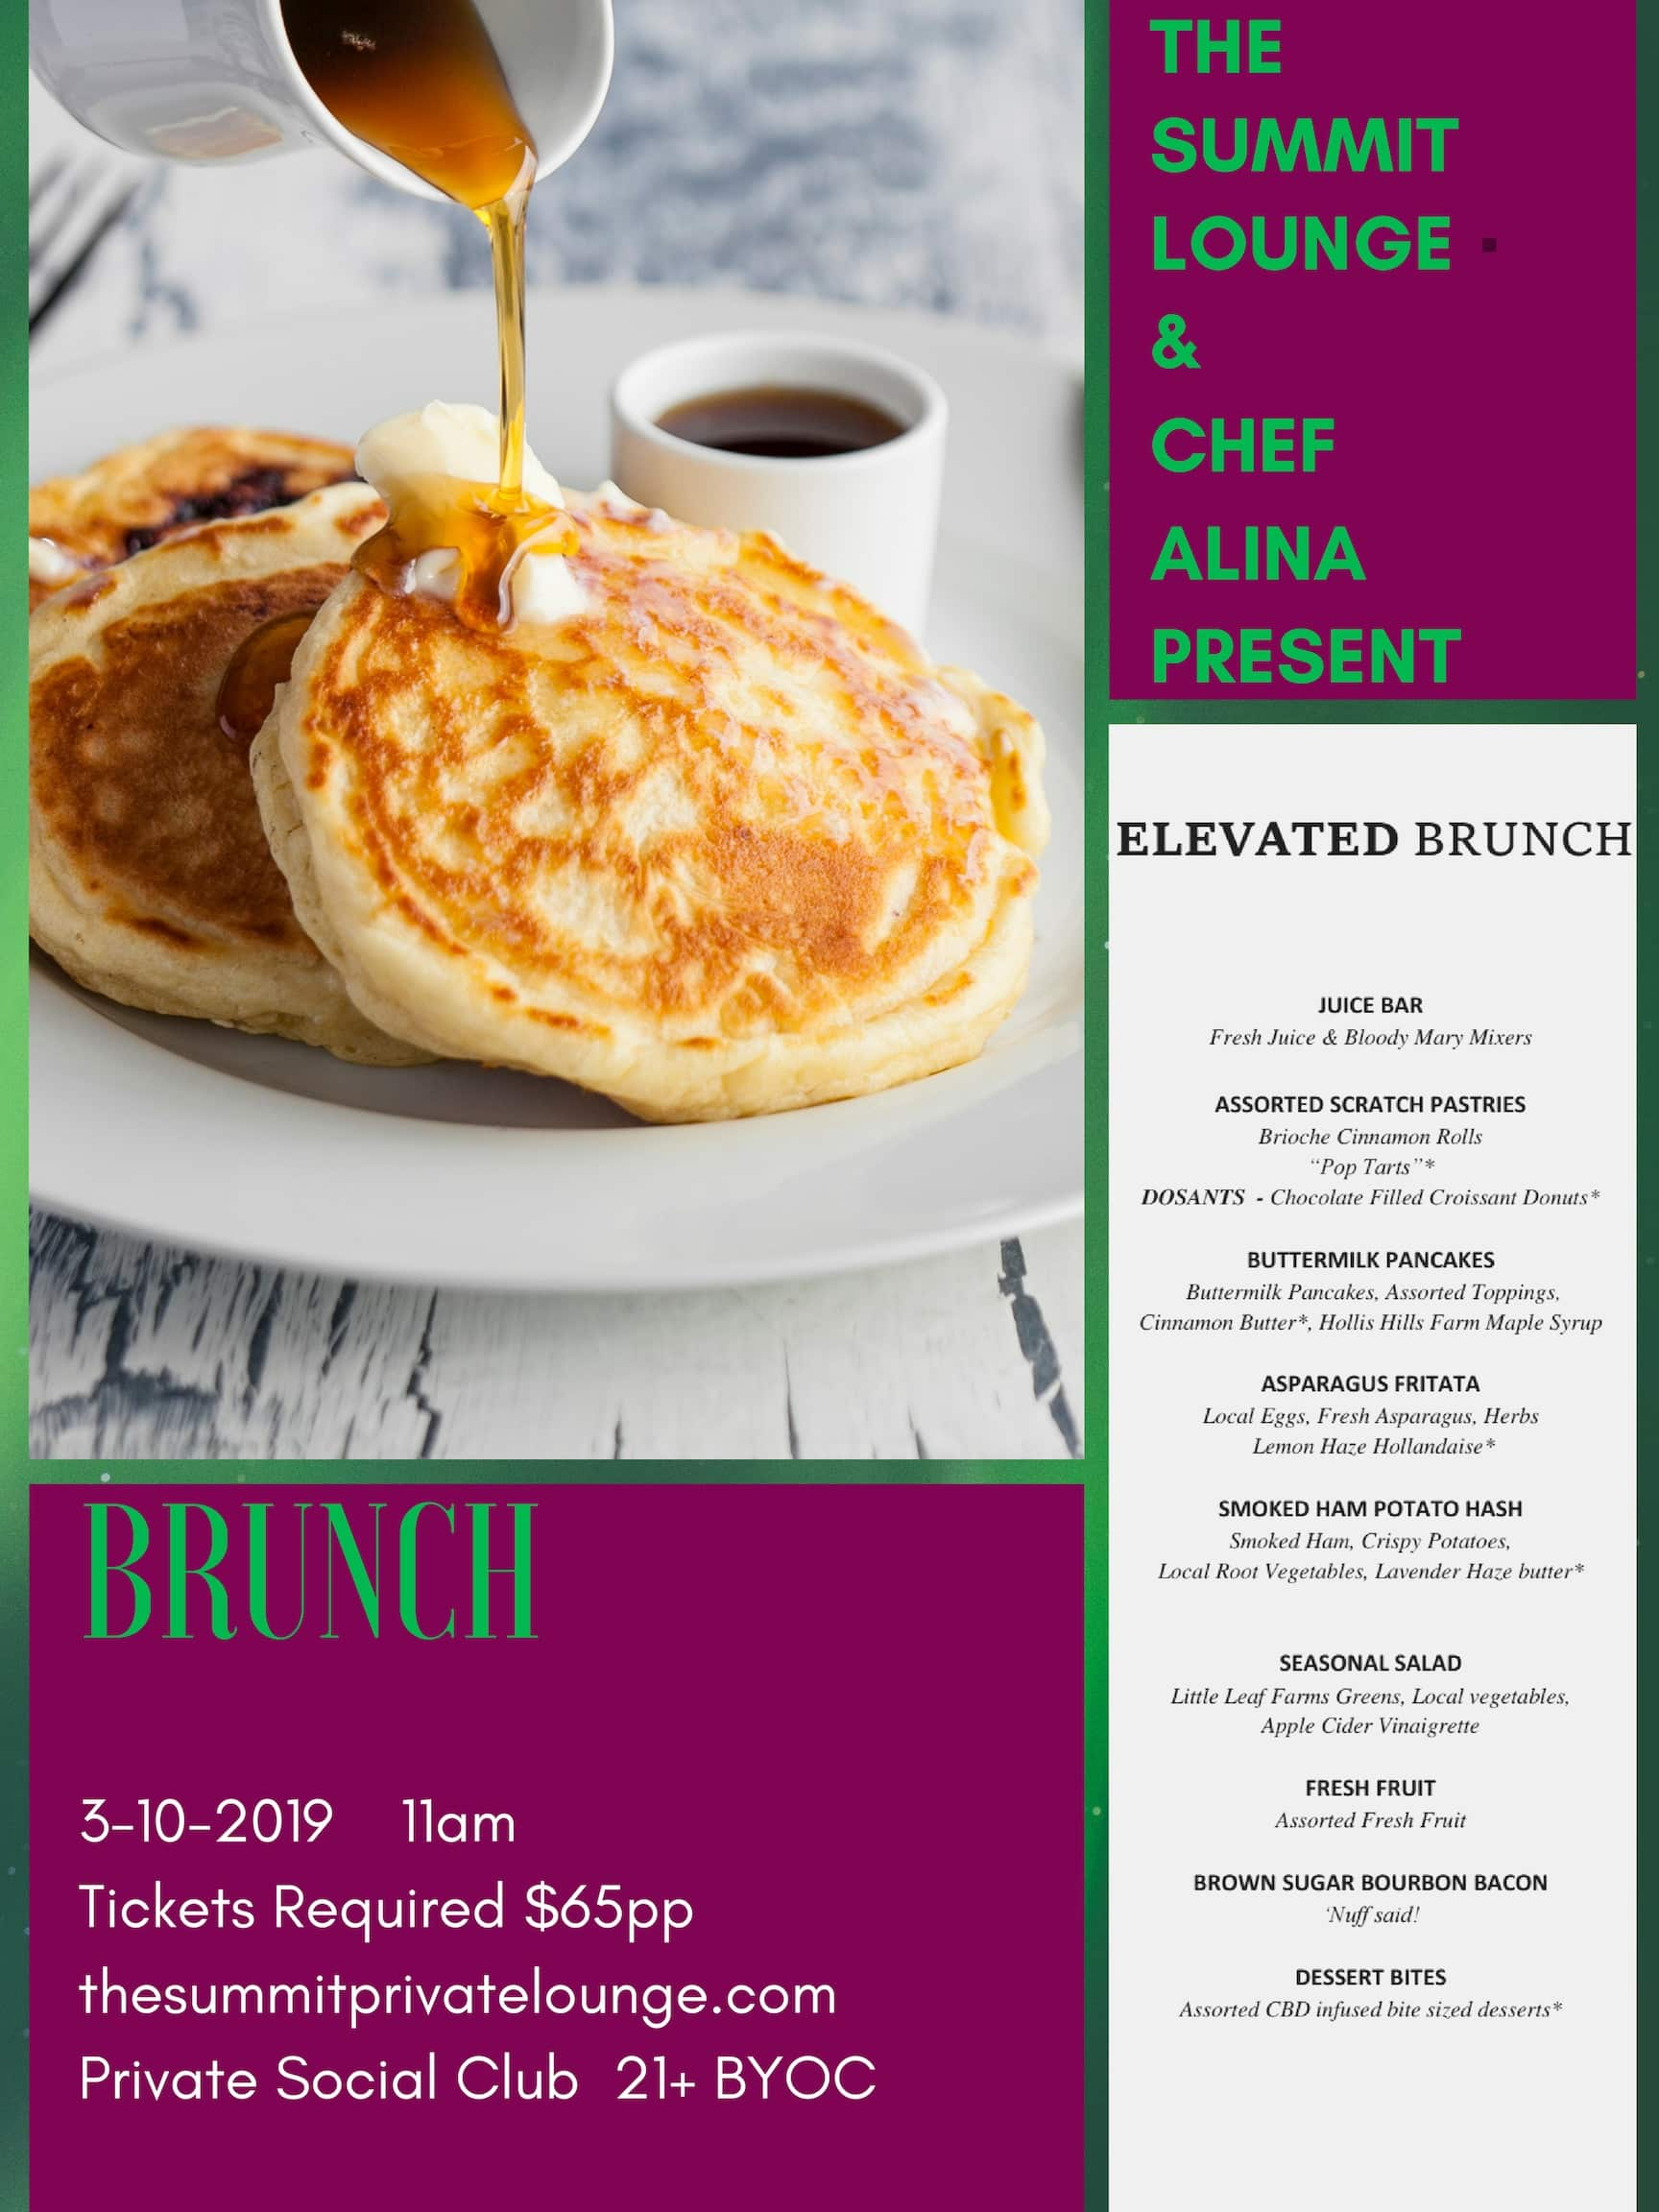 Elevated Brunch at the Summit Lounge